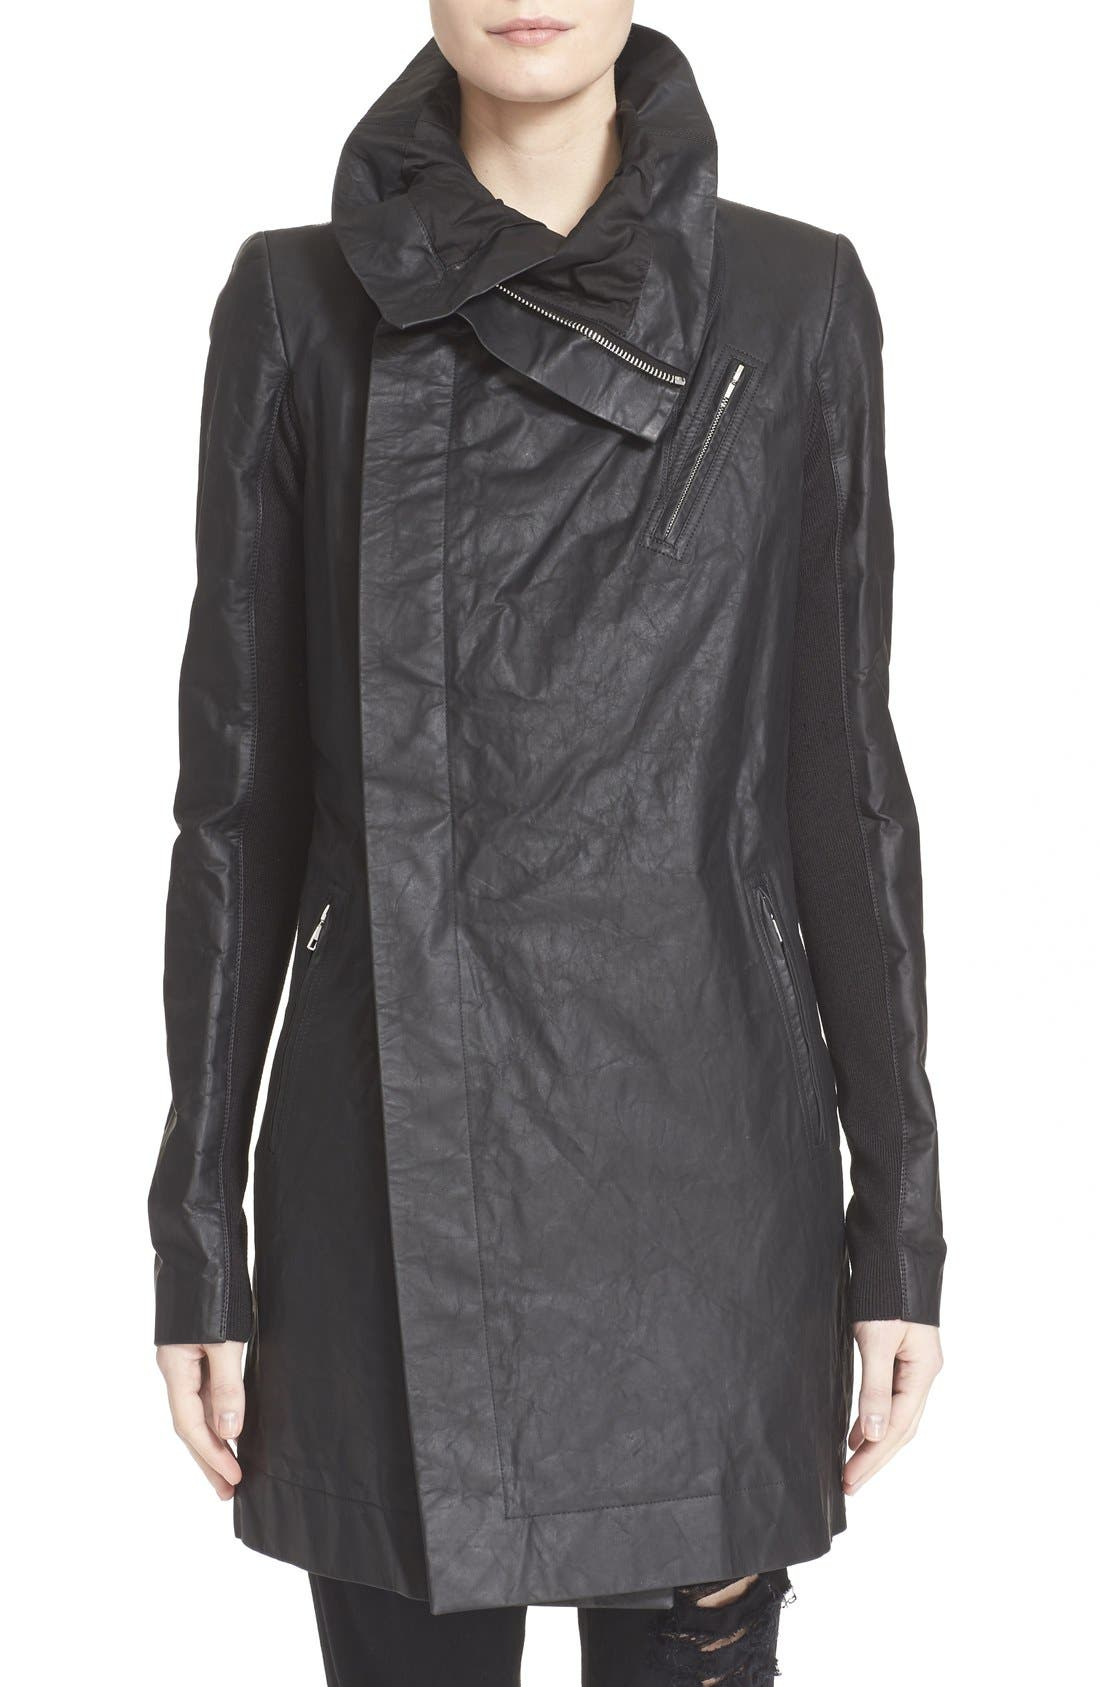 RICK OWENS 'Cyclops' Leather Trench Biker Jacket